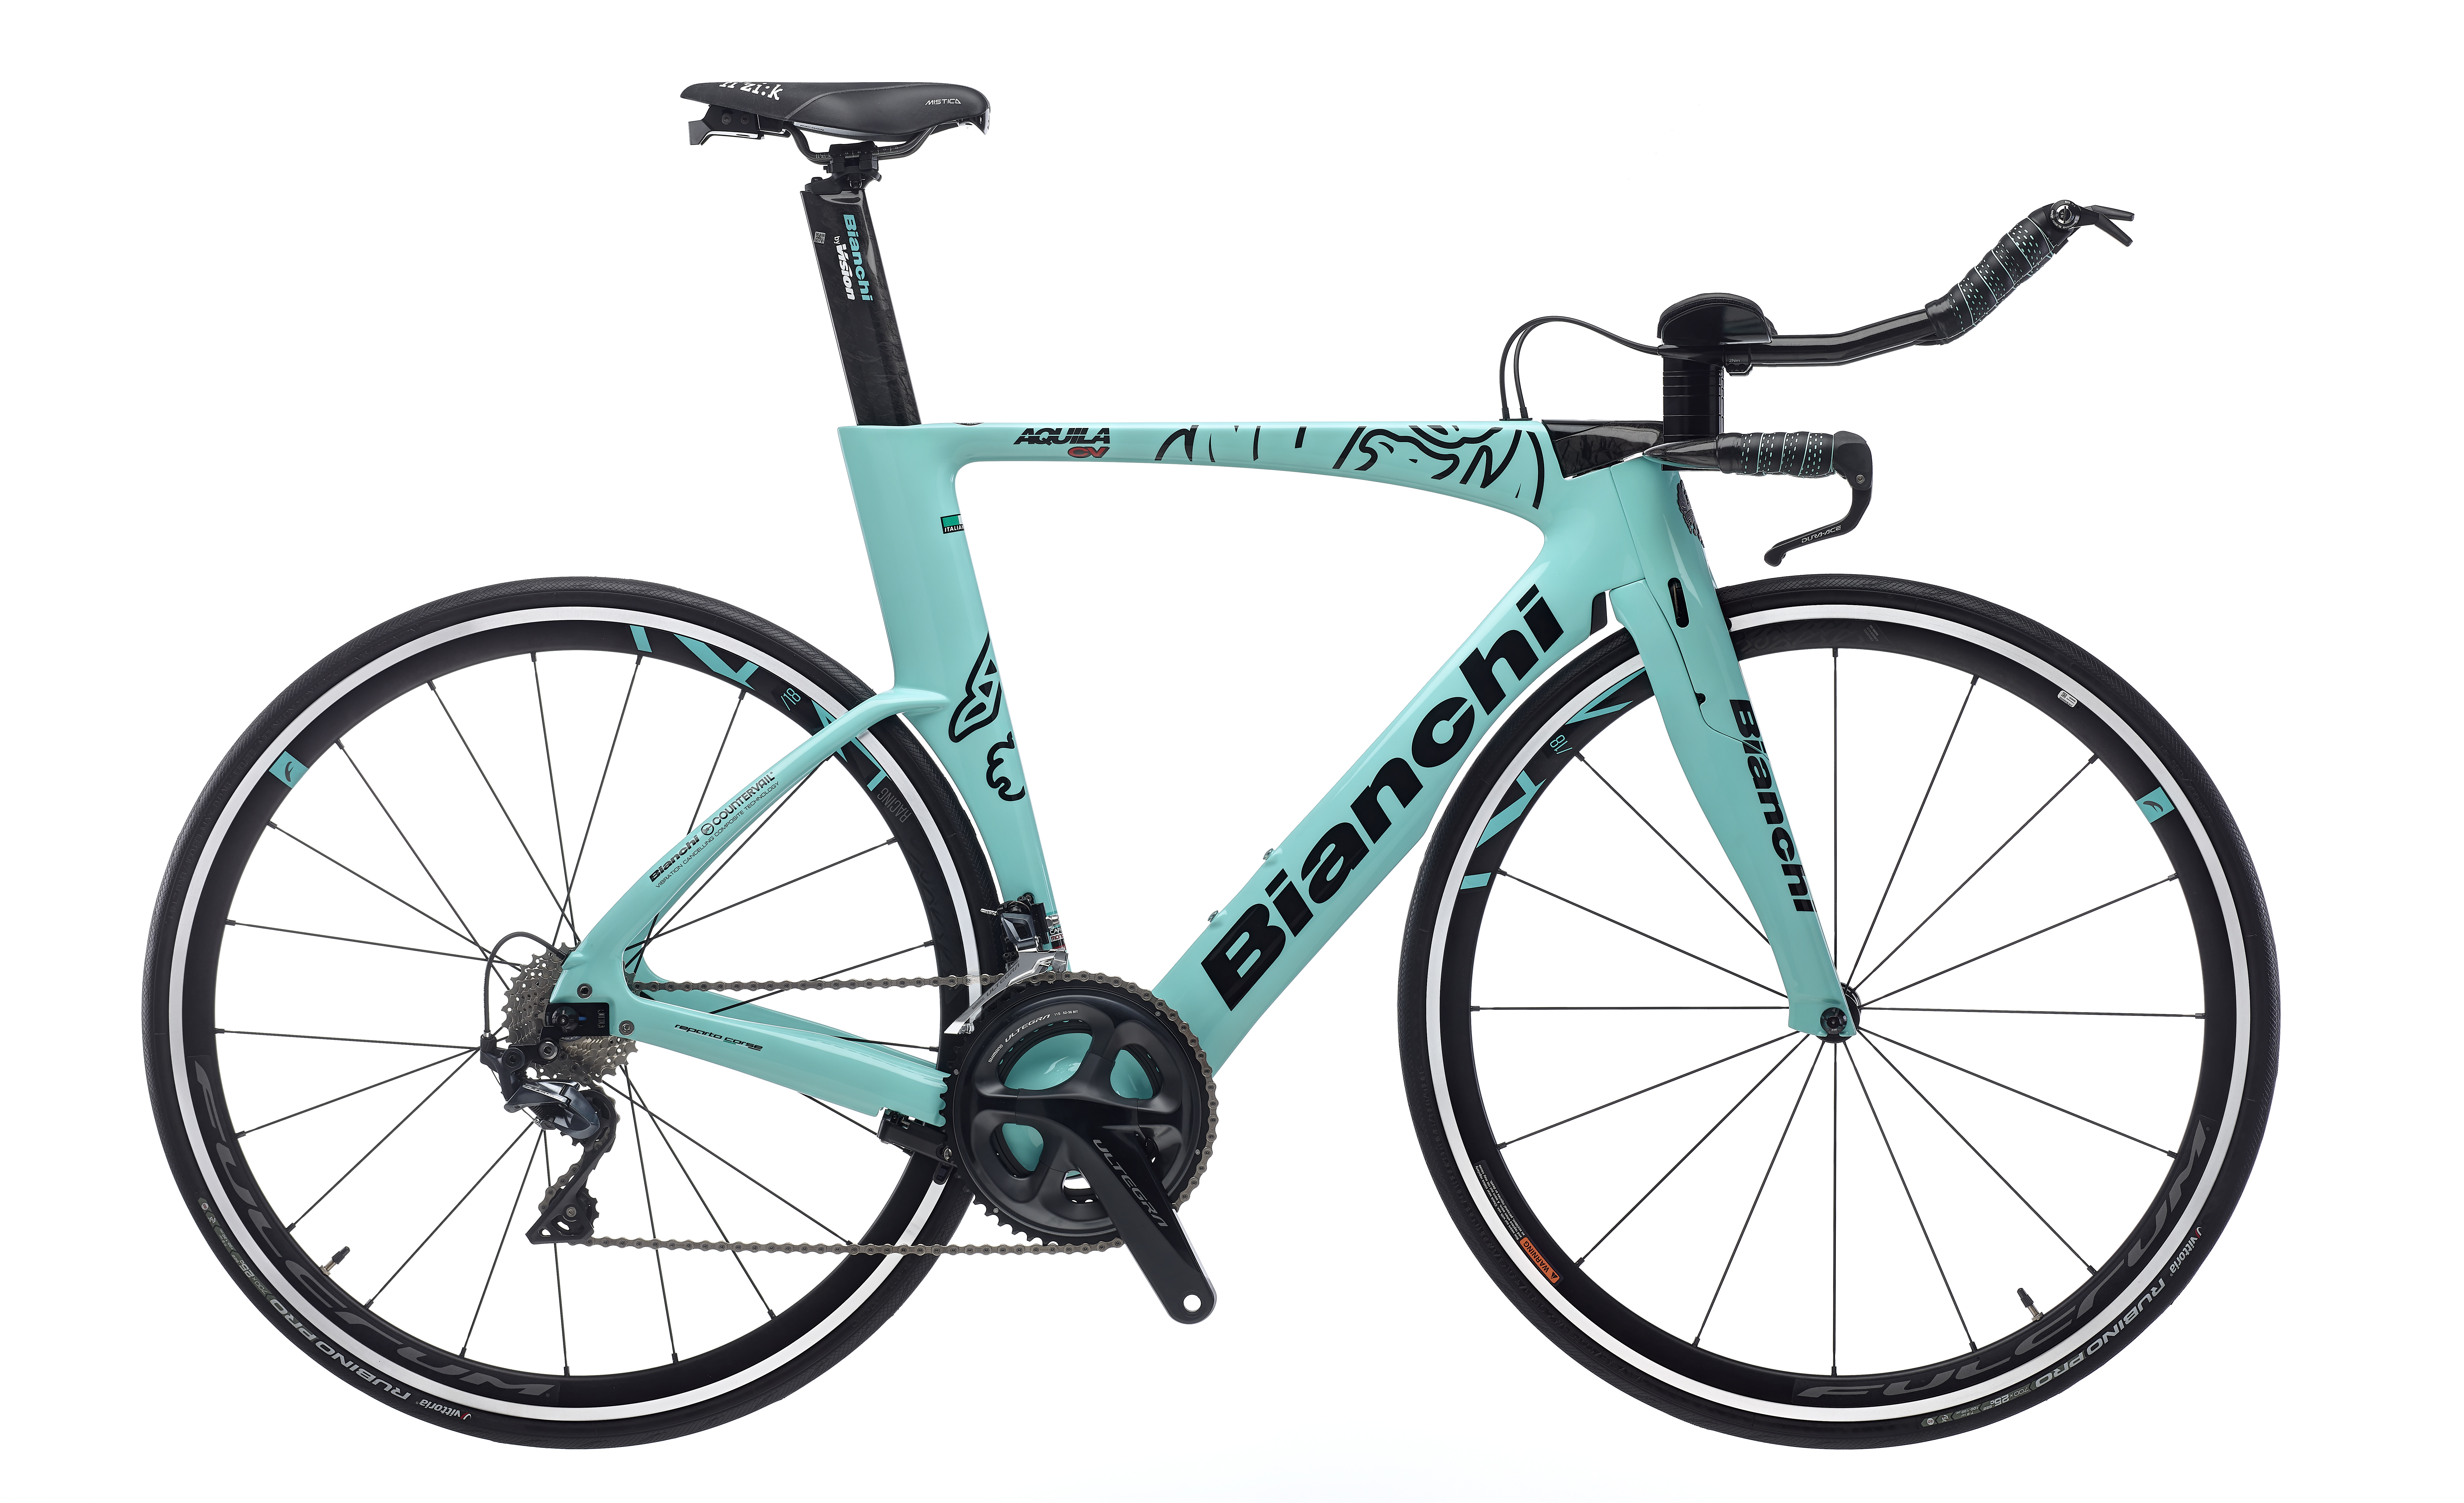 24c8c13be6a Bianchi Bikes: 2019 range overview and reviews - Cycling Weekly